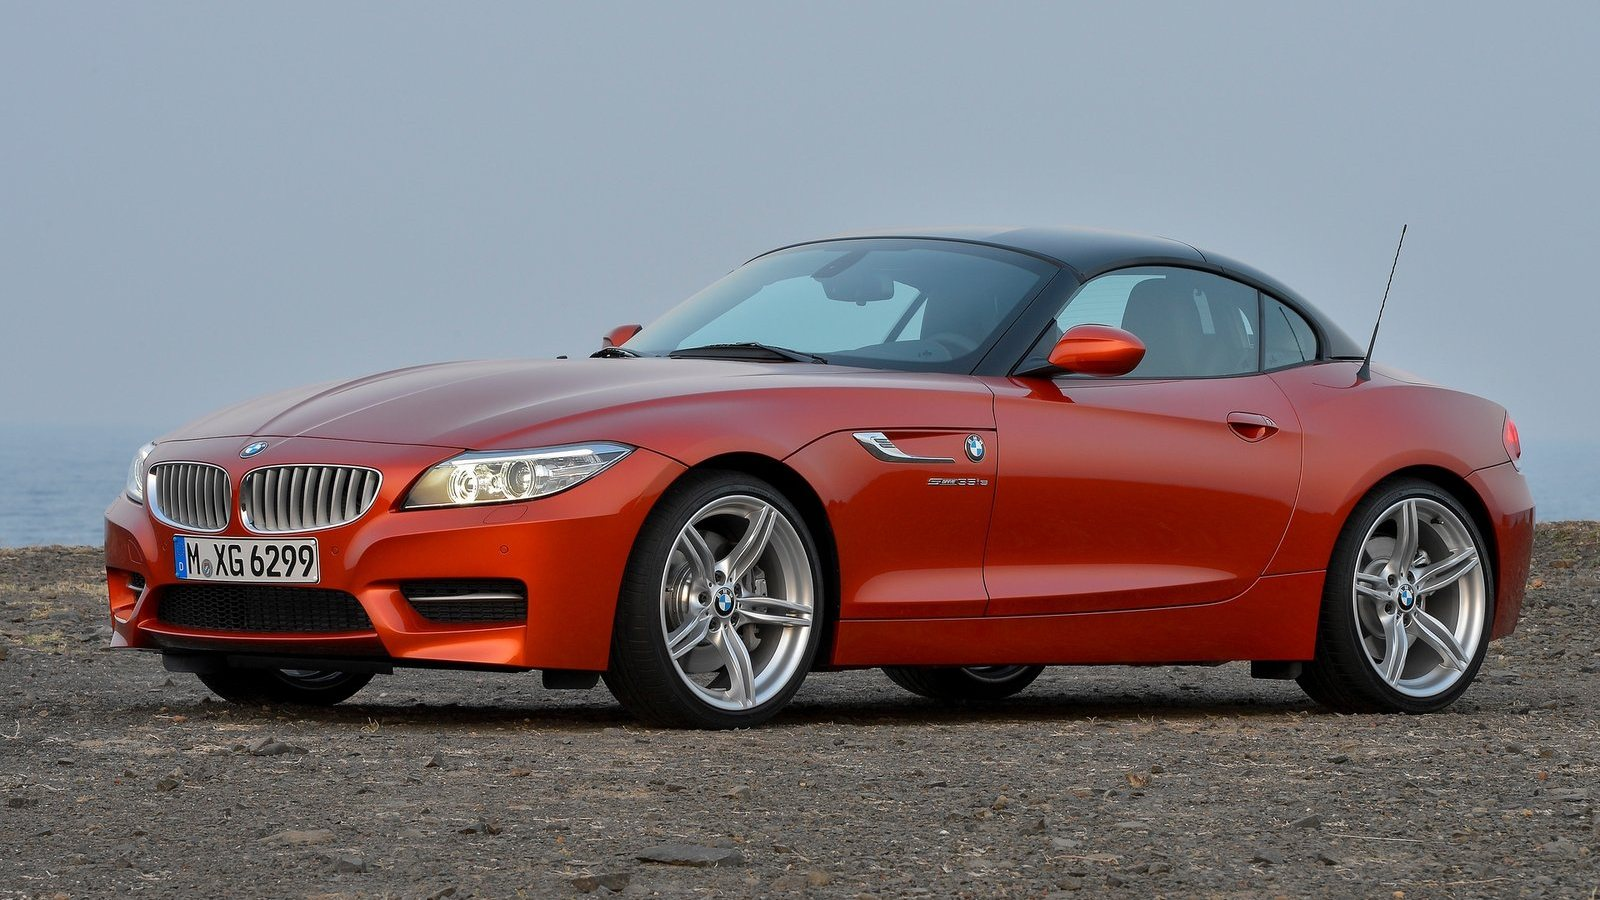 Bmw z4 roadster cars hd wallpapers download 1080p ultra - Bmw cars wallpapers hd free download ...